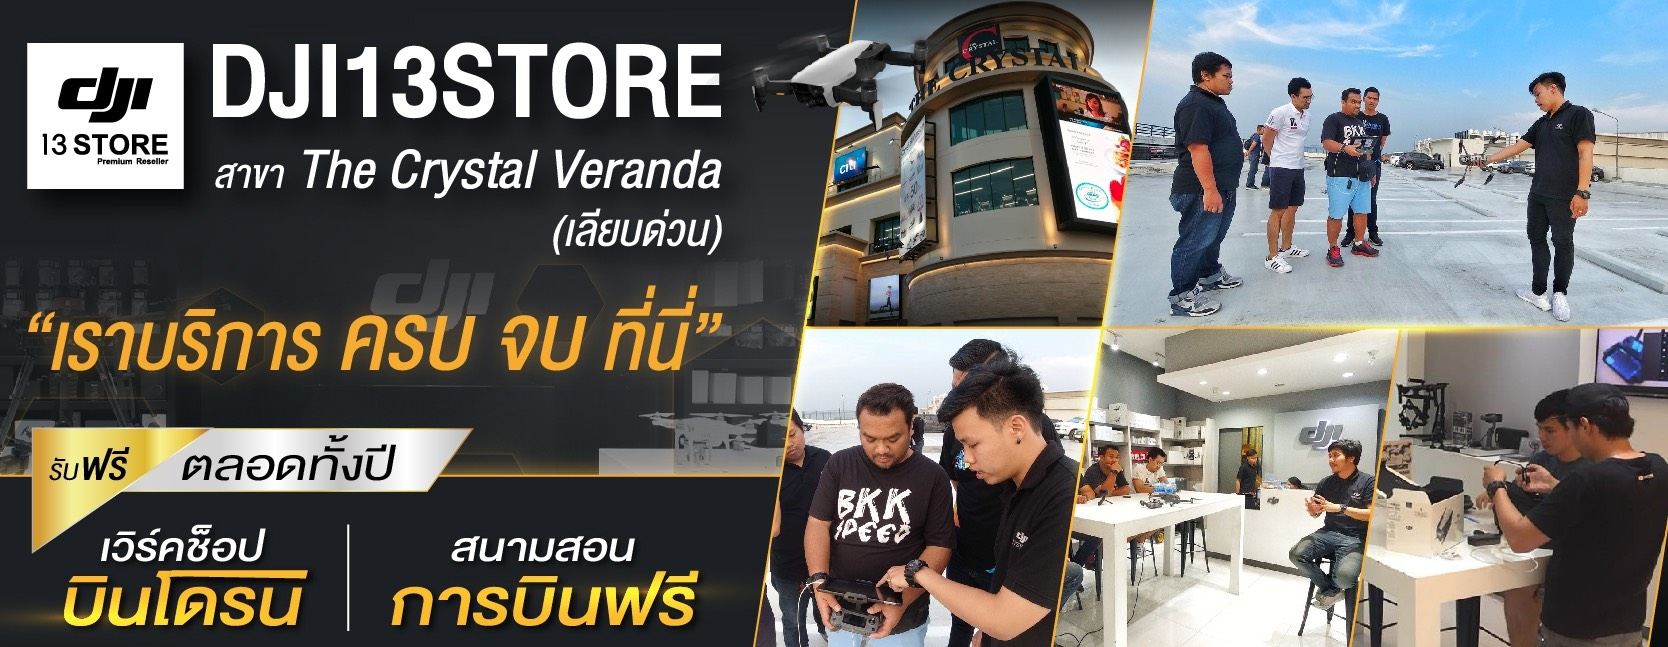 DJI13Store สาขา The Crystal Veranda ชั้น 2